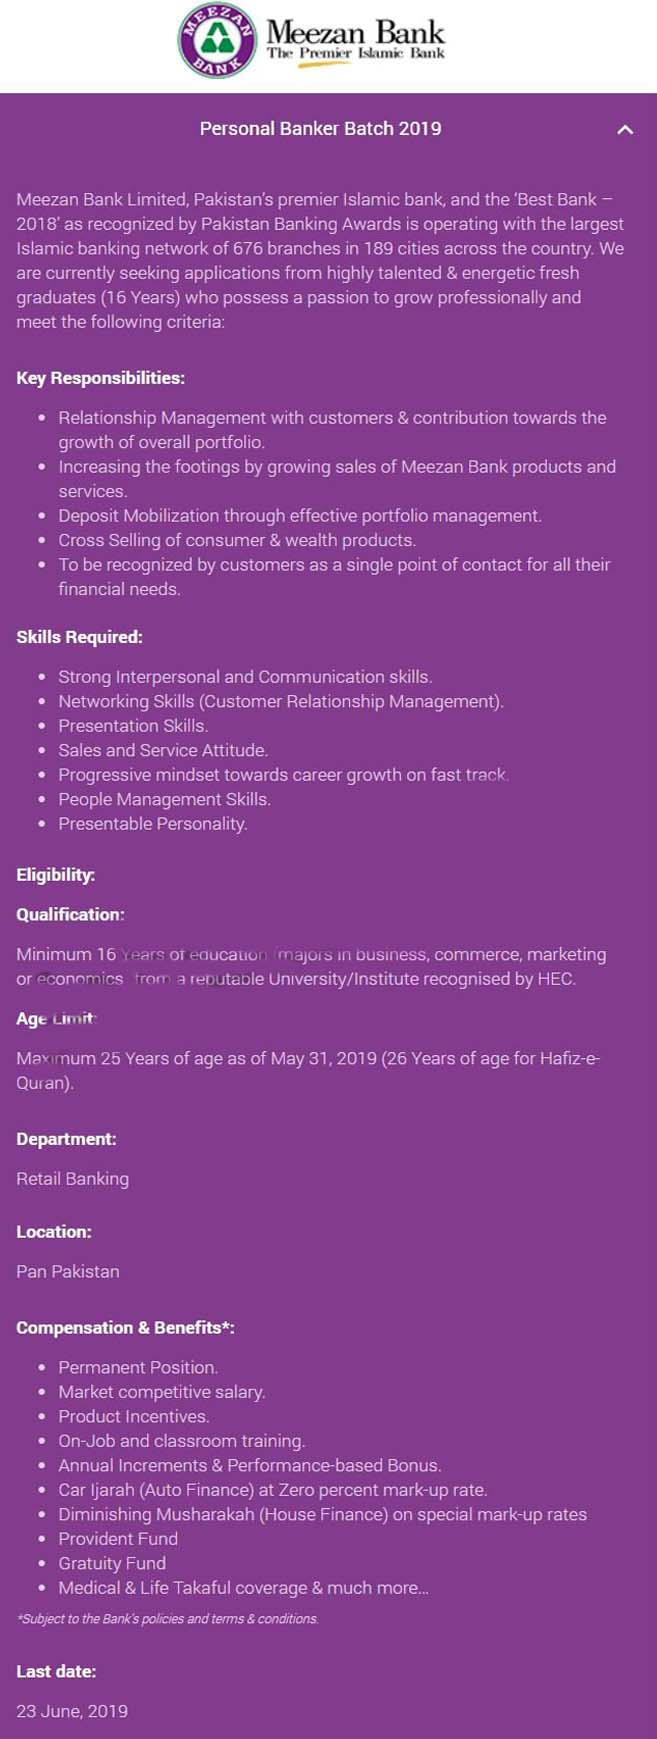 Get a Latest Jobs In Meezan Bank 2019